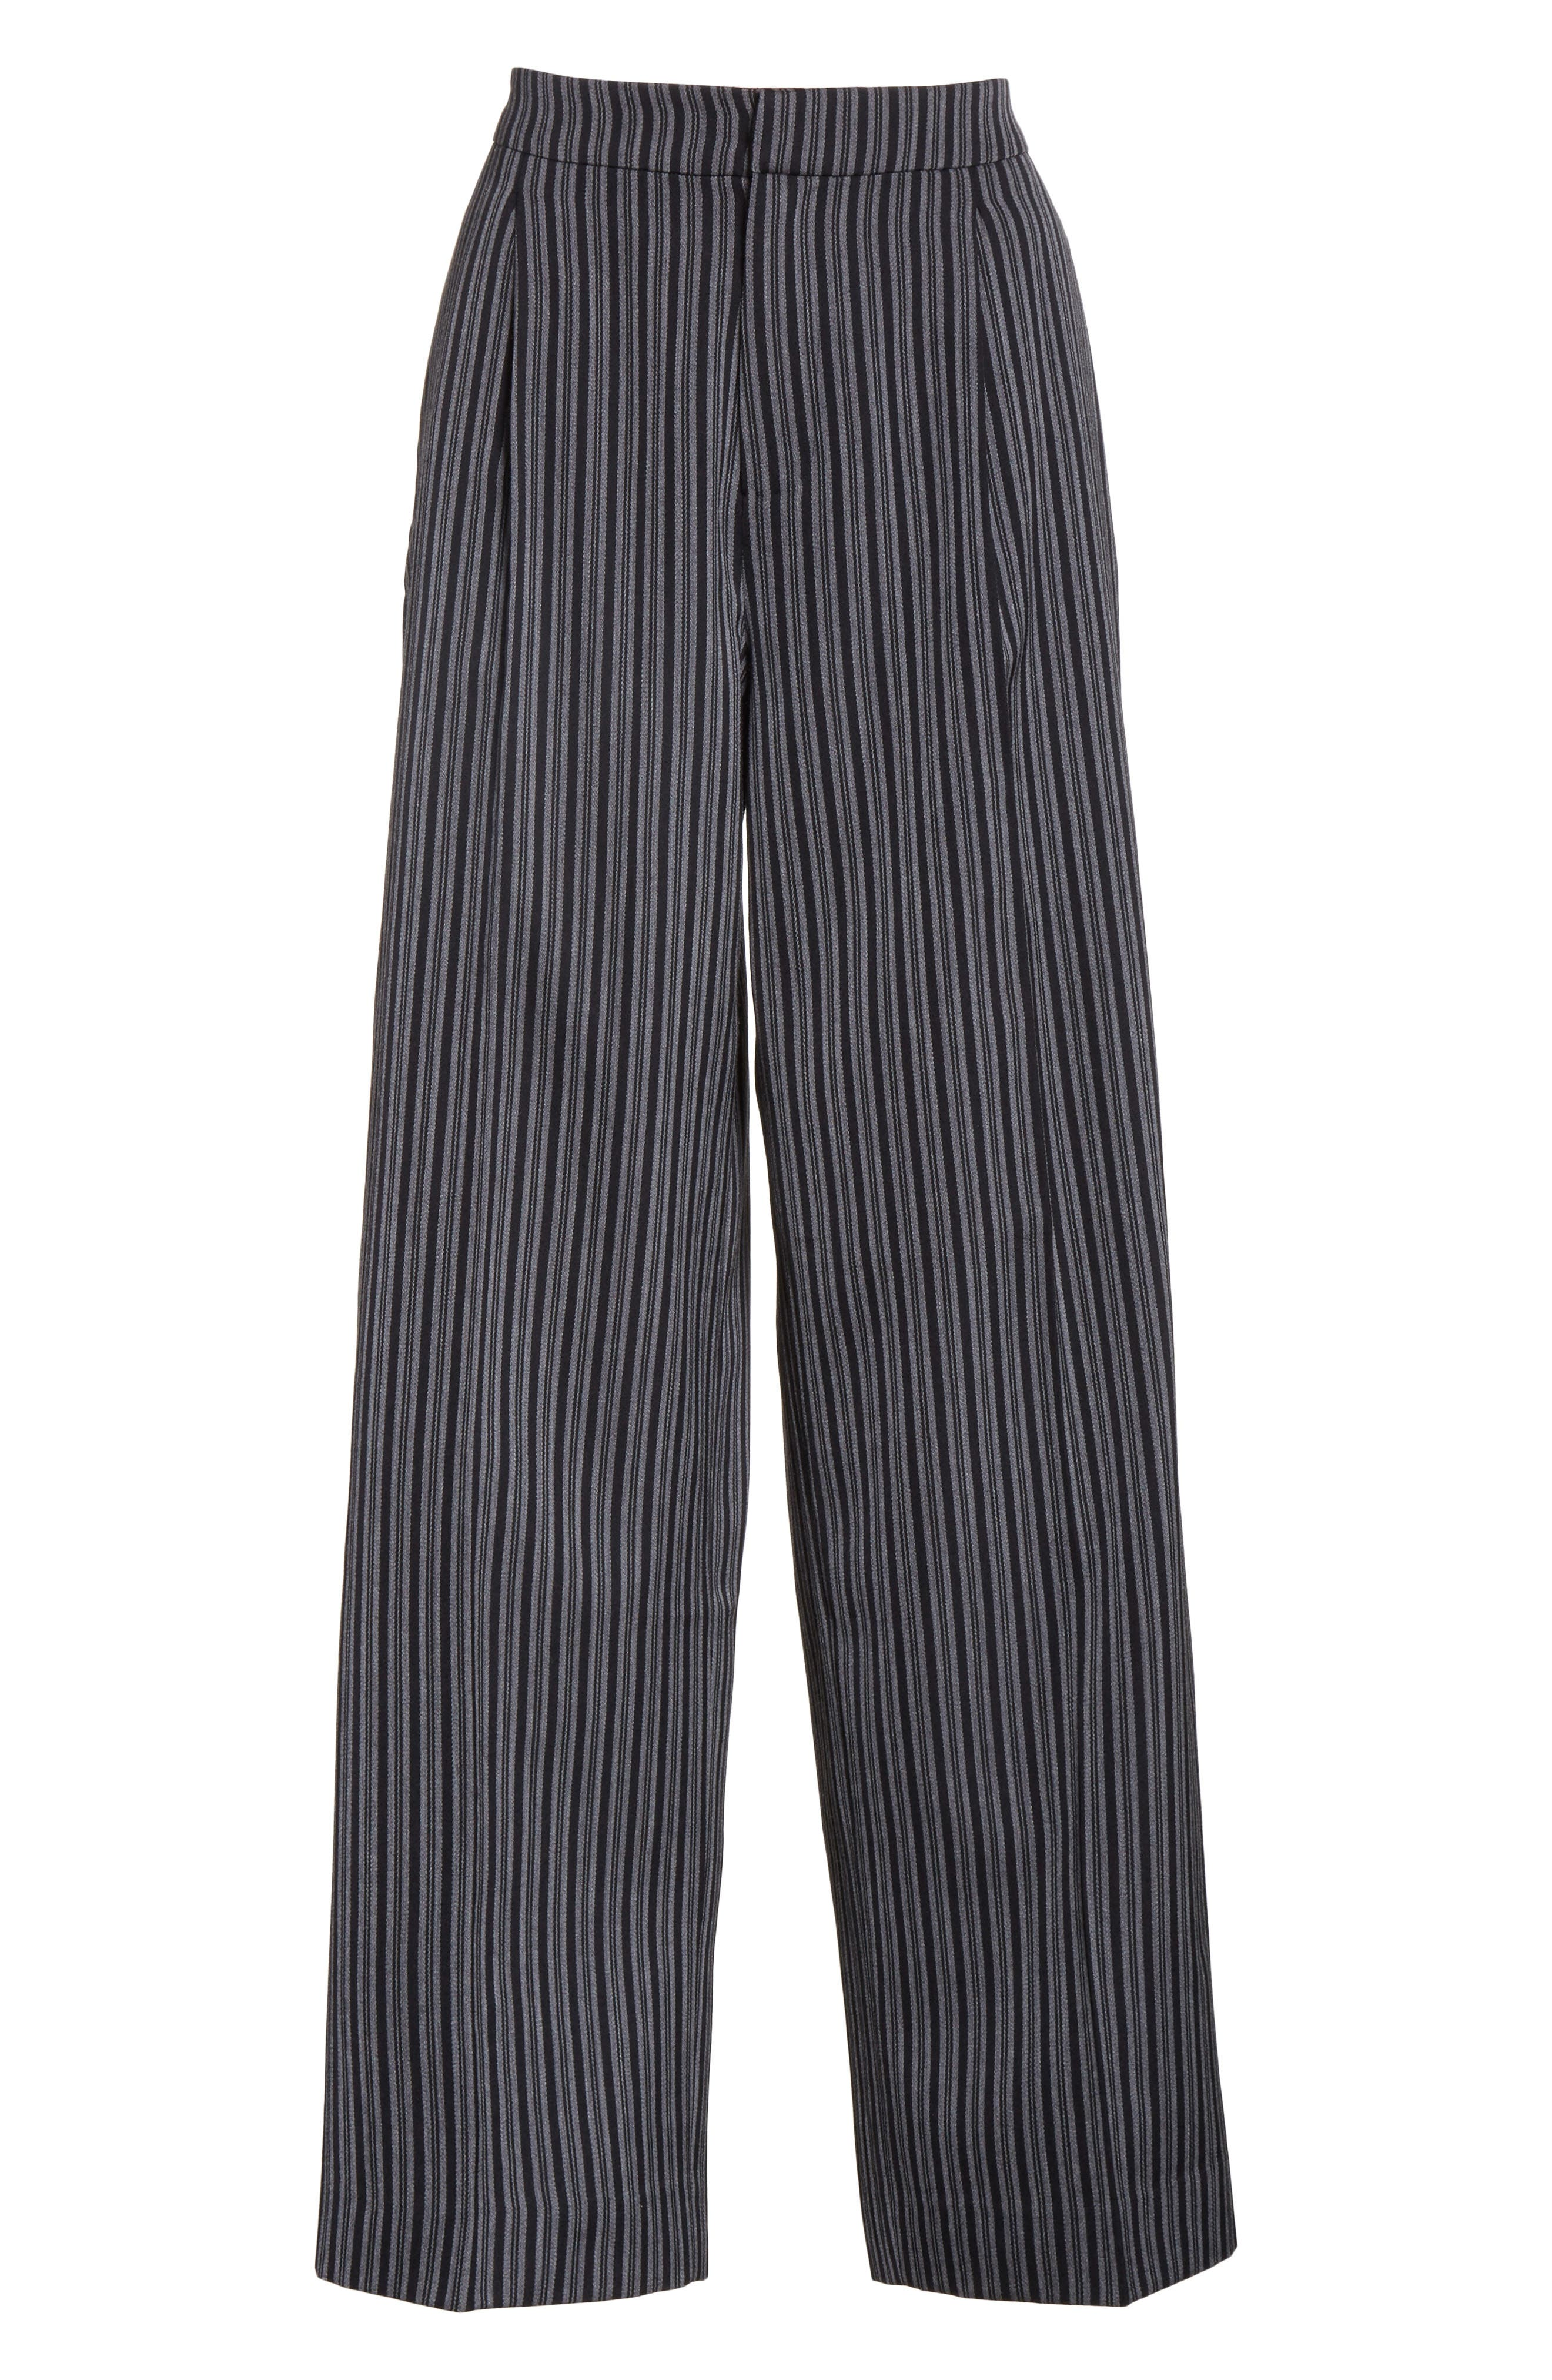 Pinstripe Pleated Wide Leg Wool Pants,                             Alternate thumbnail 6, color,